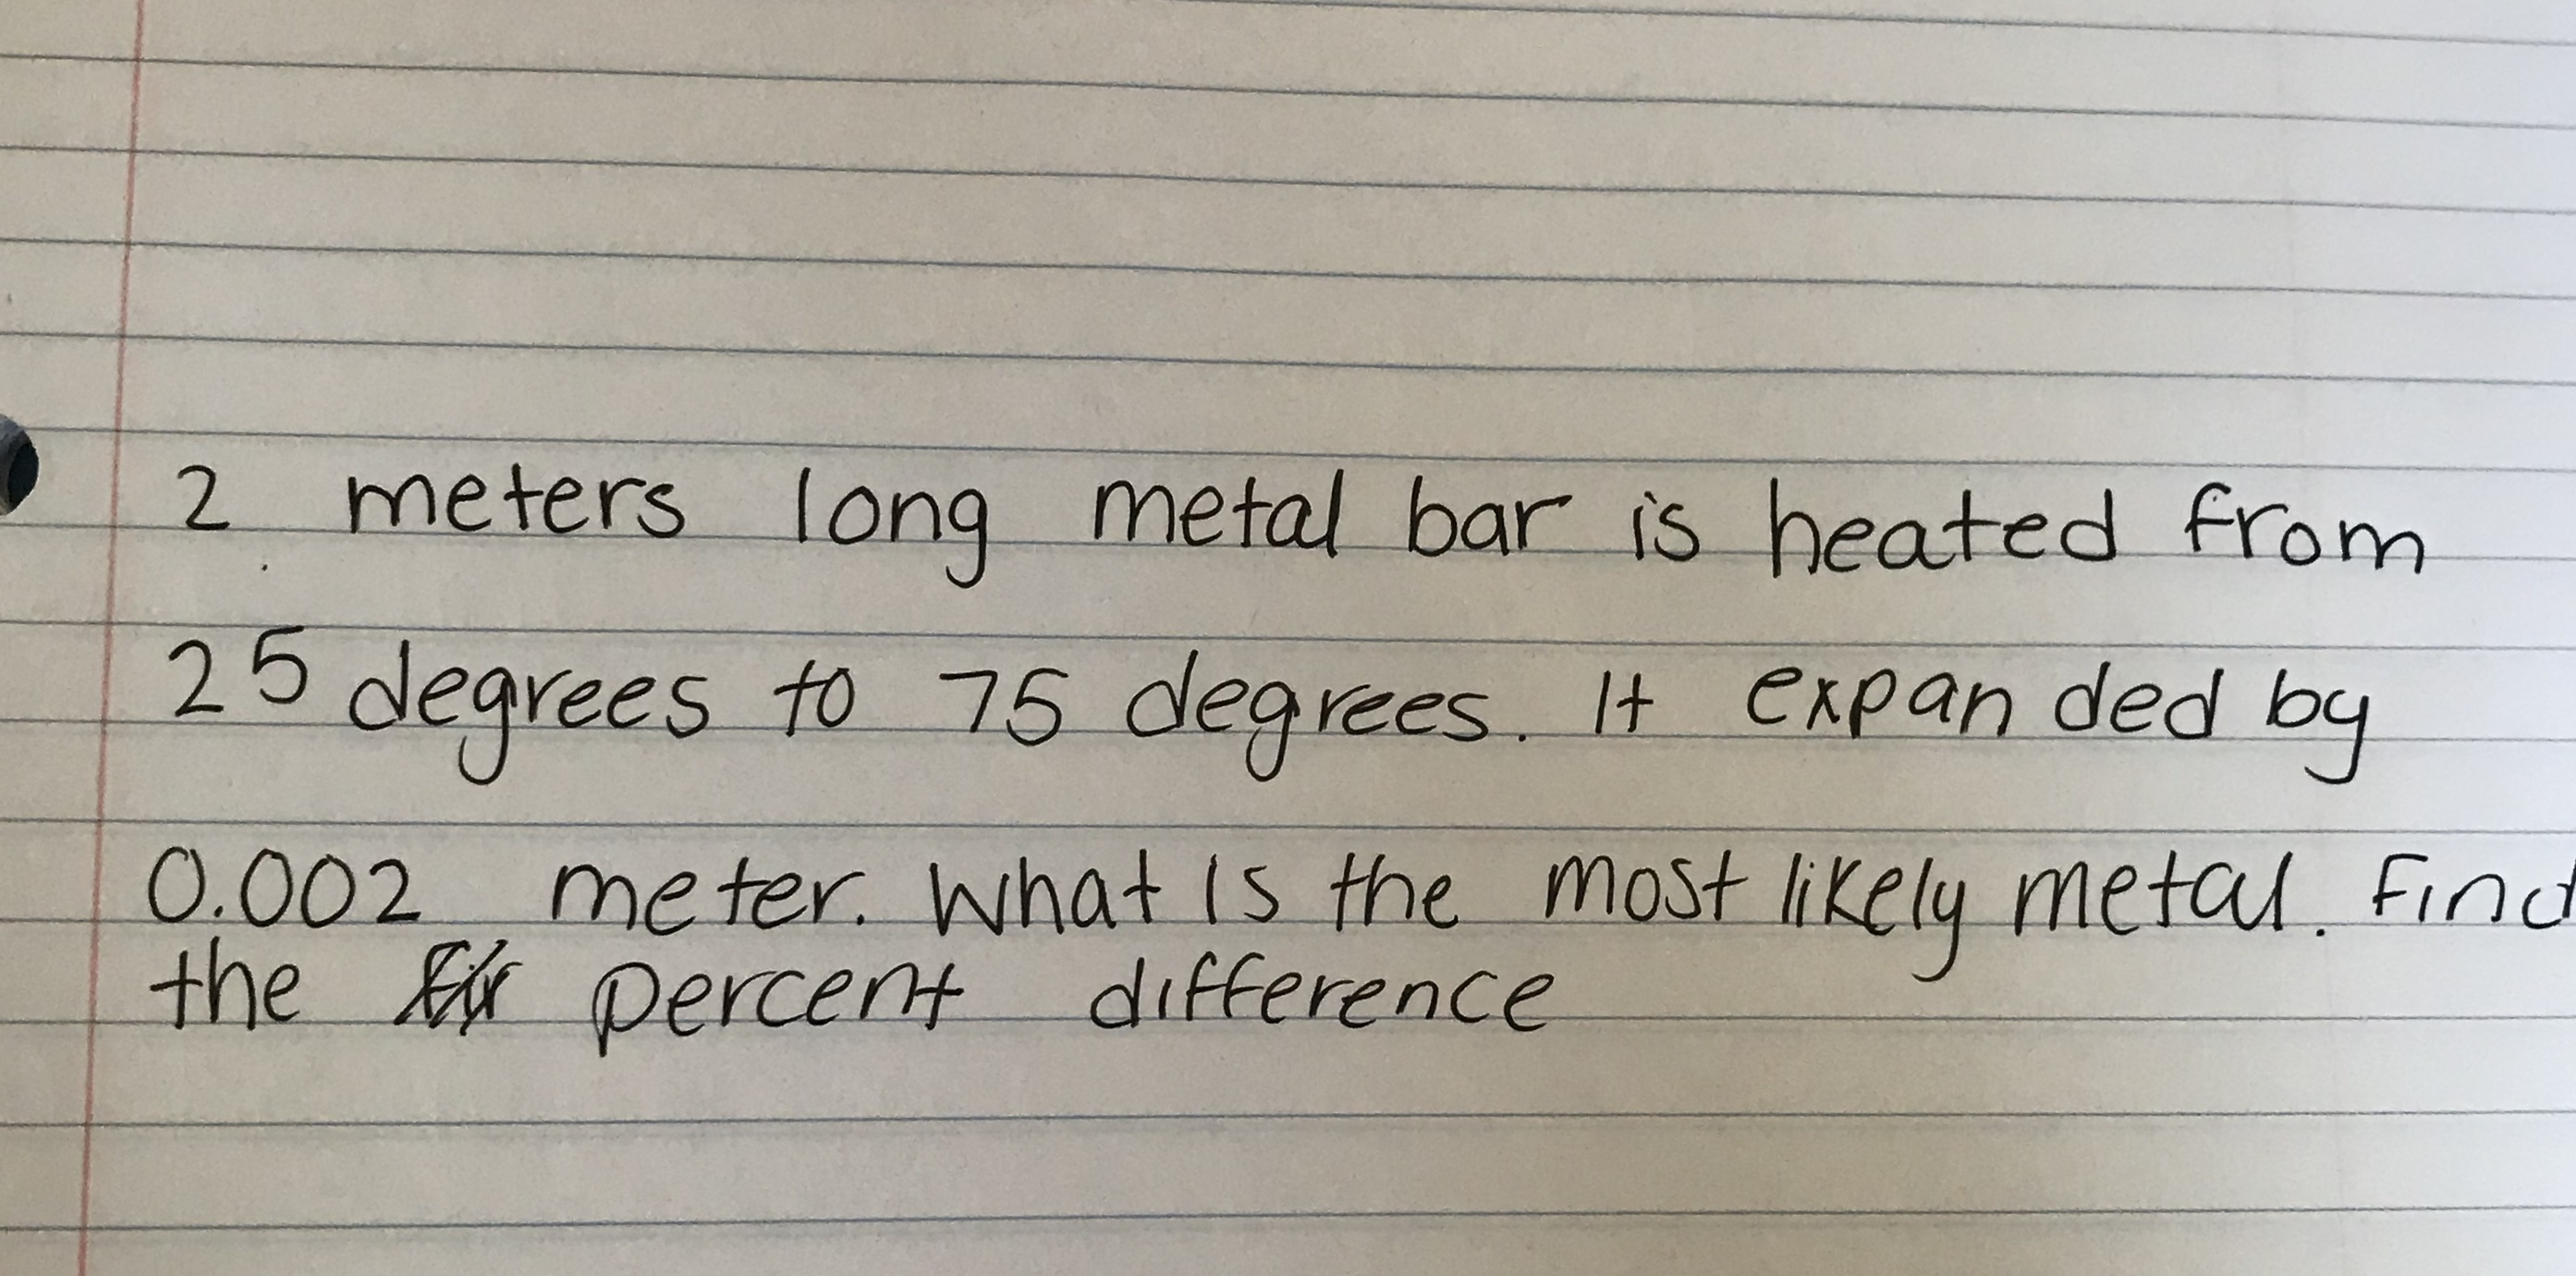 2 meters long metal bar is heated from 25 degrees to 75 degrees It Cxpan ded by 0.002 meter what is the most likely metal fino the percent difference lt e